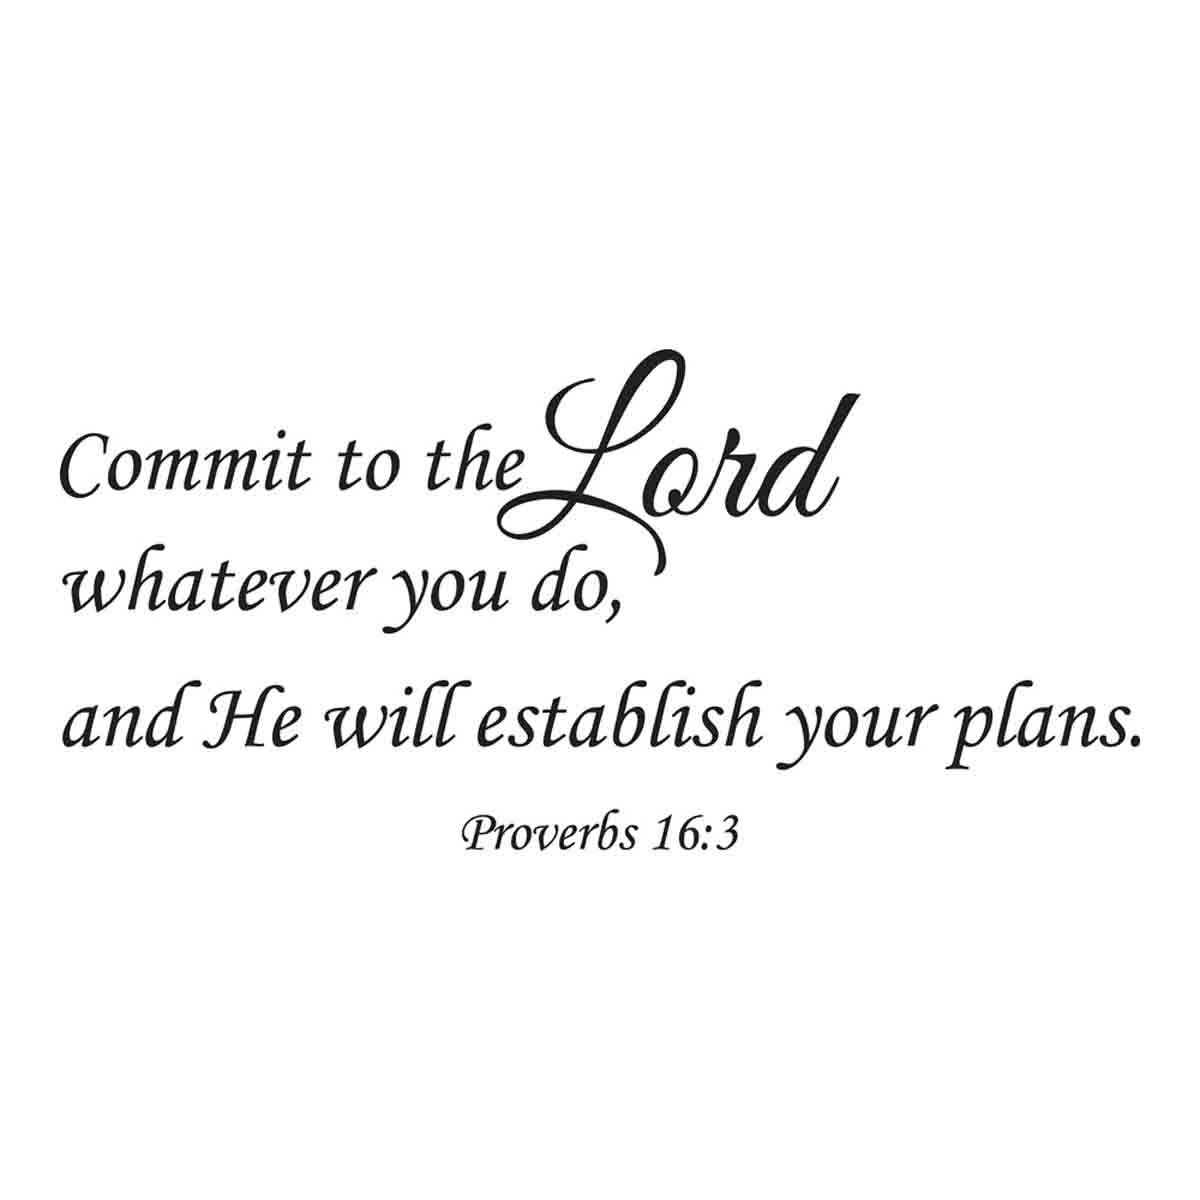 Empresal Commit to The Lord Whatever You Do and Your Plans Will Succeed Wall Decal Quote Proverbs 16:3 Bible Verse Vinyl Scripture Removable Art Decor Sticker